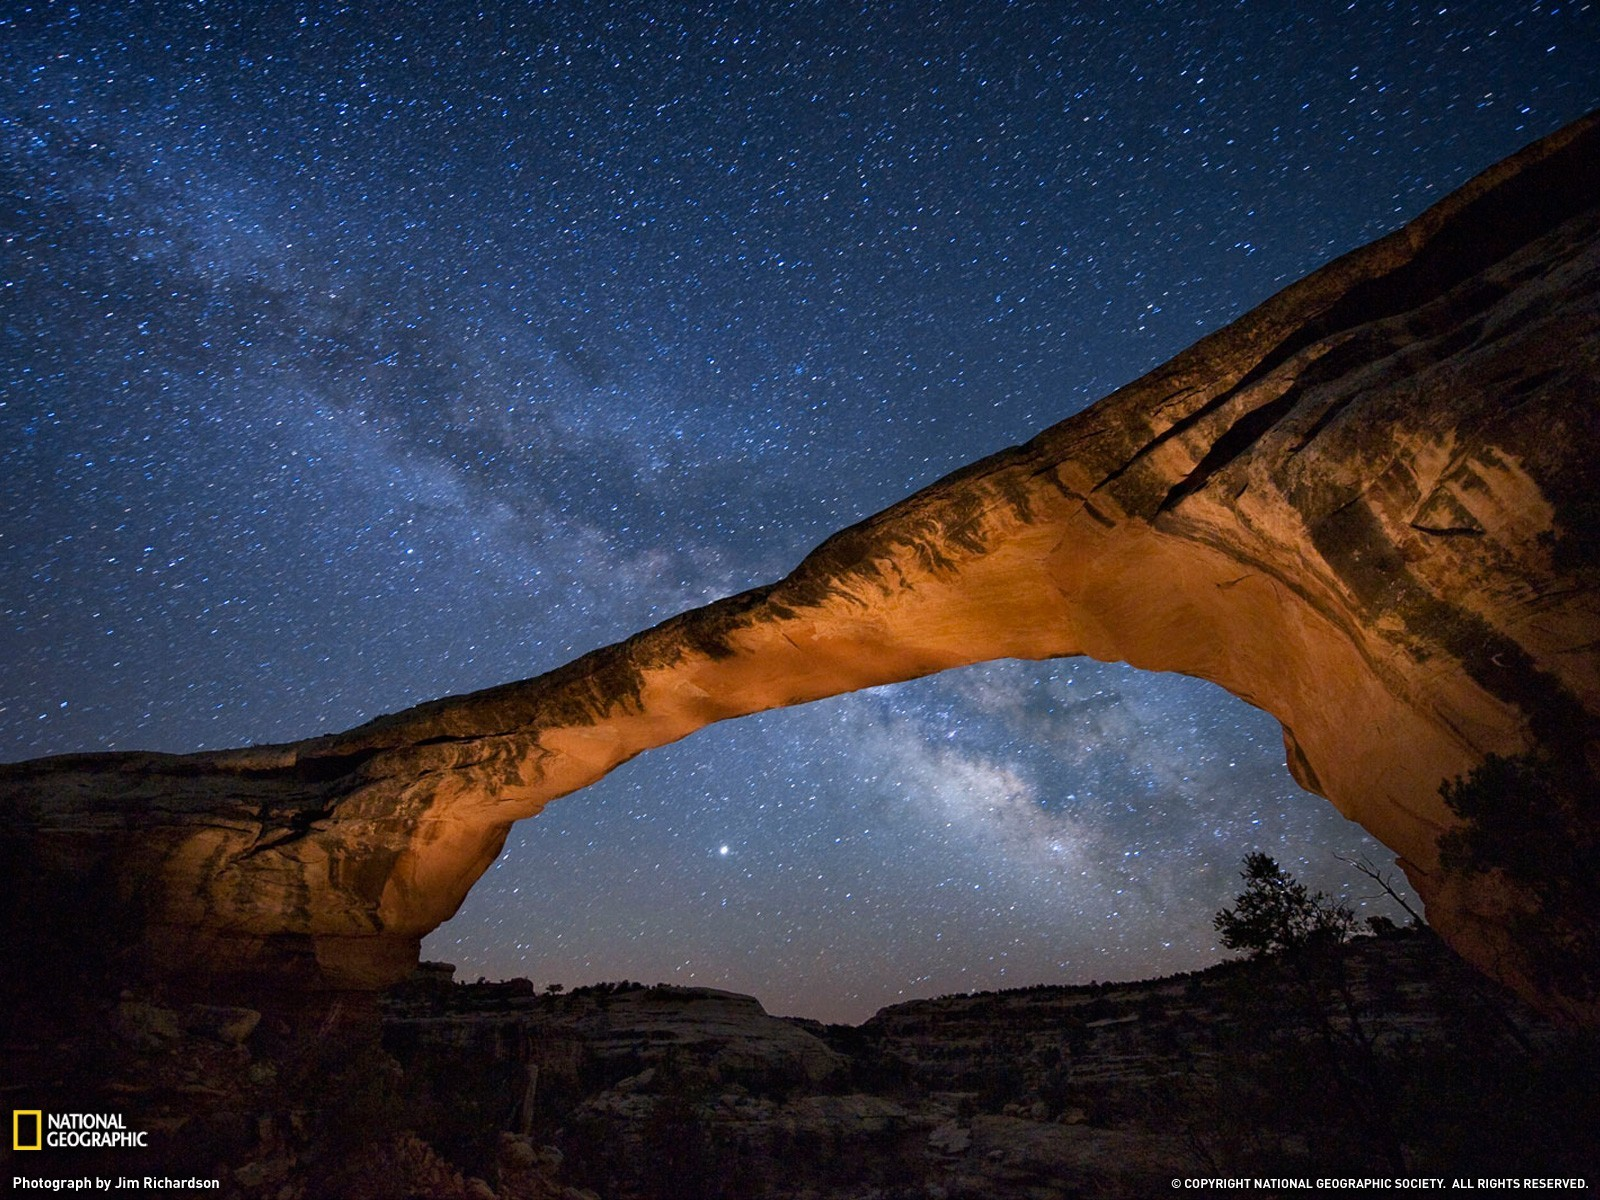 natural-bridges-national-monument-night-skyowachomo-bridge-at-night-utah-biigwm0s